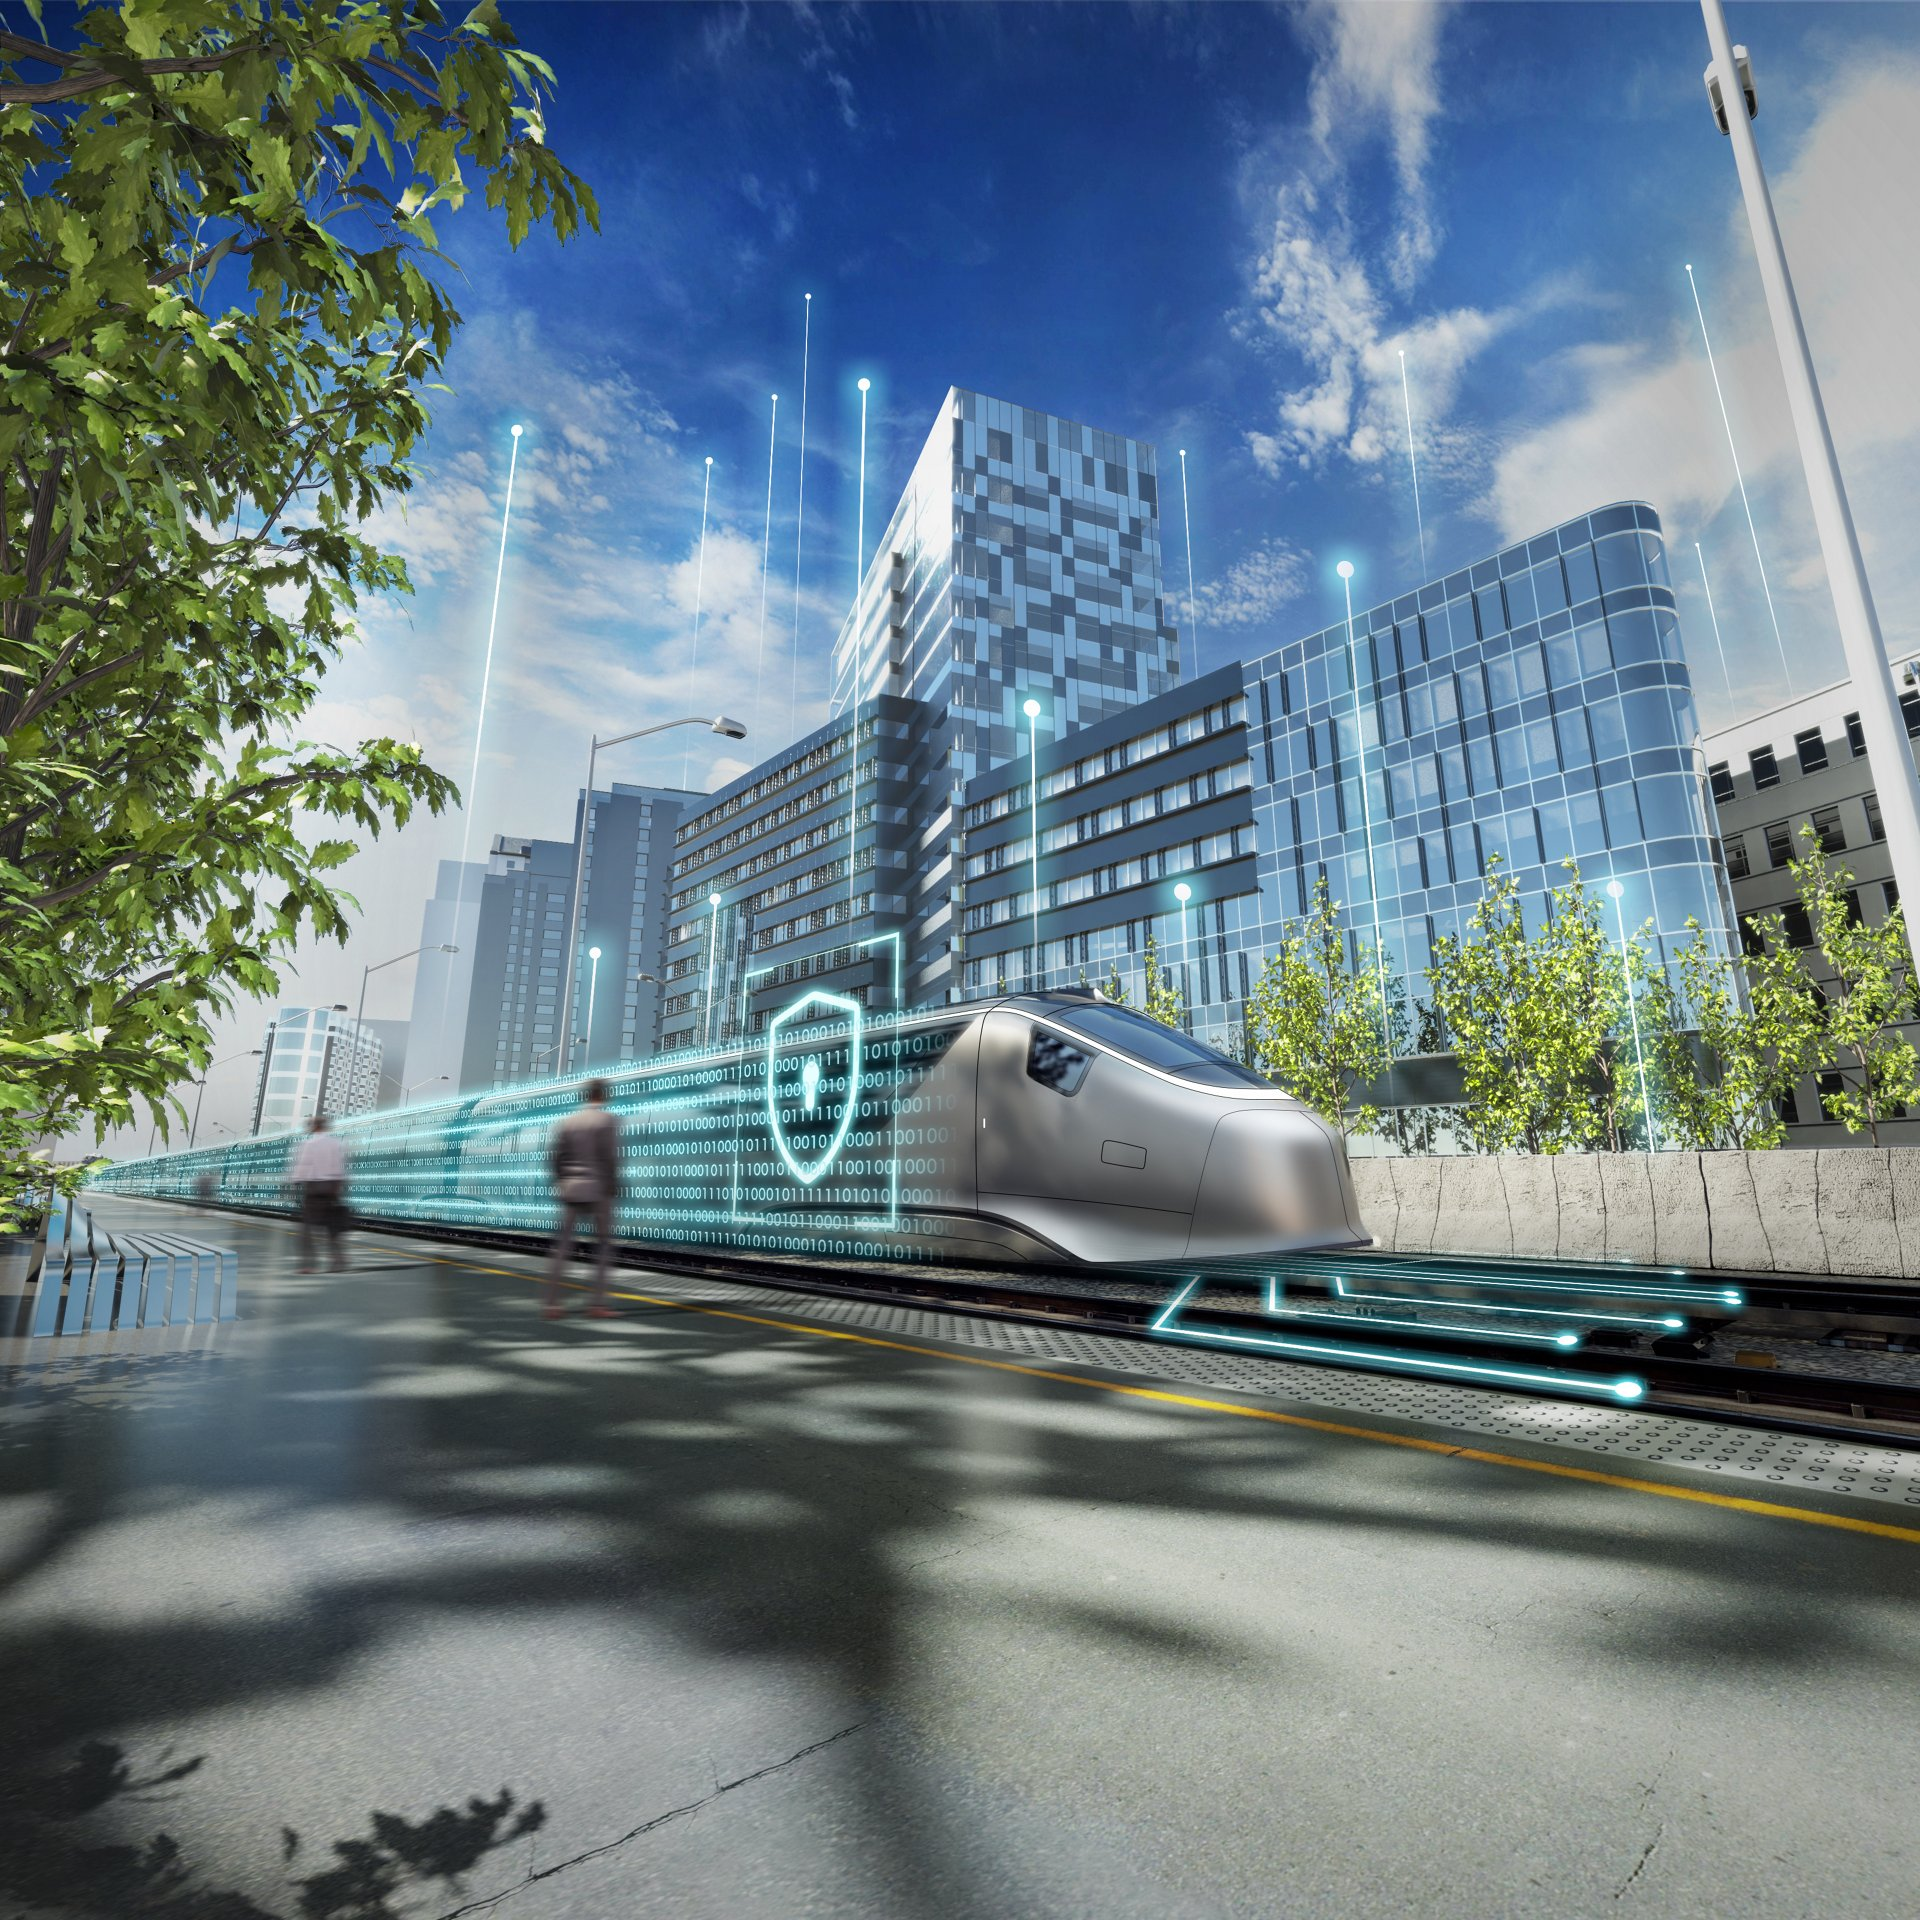 Airbus CyberSecurity and Alstom, global leader in sustainable mobility, have signed a worldwide cooperation agreement focussing on rail transport cybersecurity.